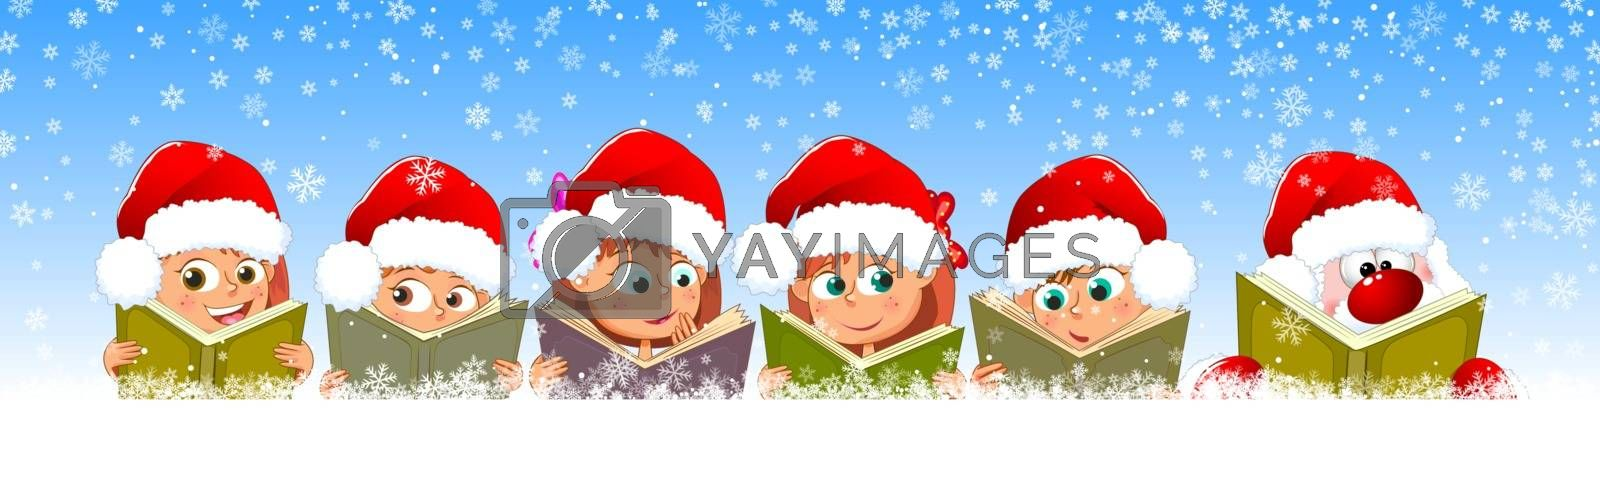 Little children read books. Children and Santa with books on a background of snow and snowflakes.